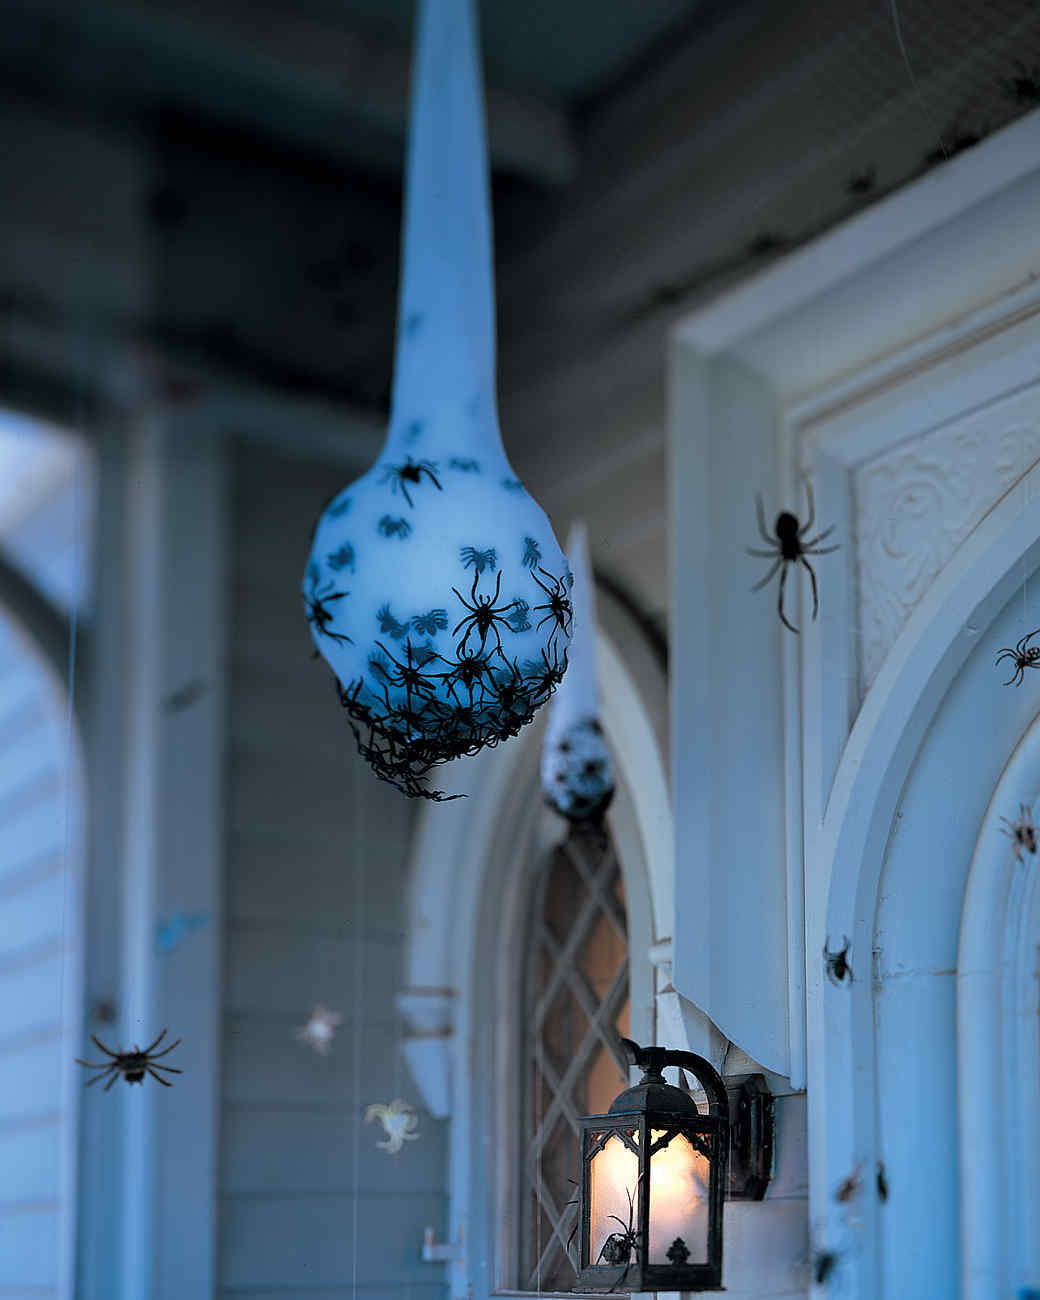 Spider eggs on the porch hanging - Scary Halloween Decorations That'll Give You The Jitters